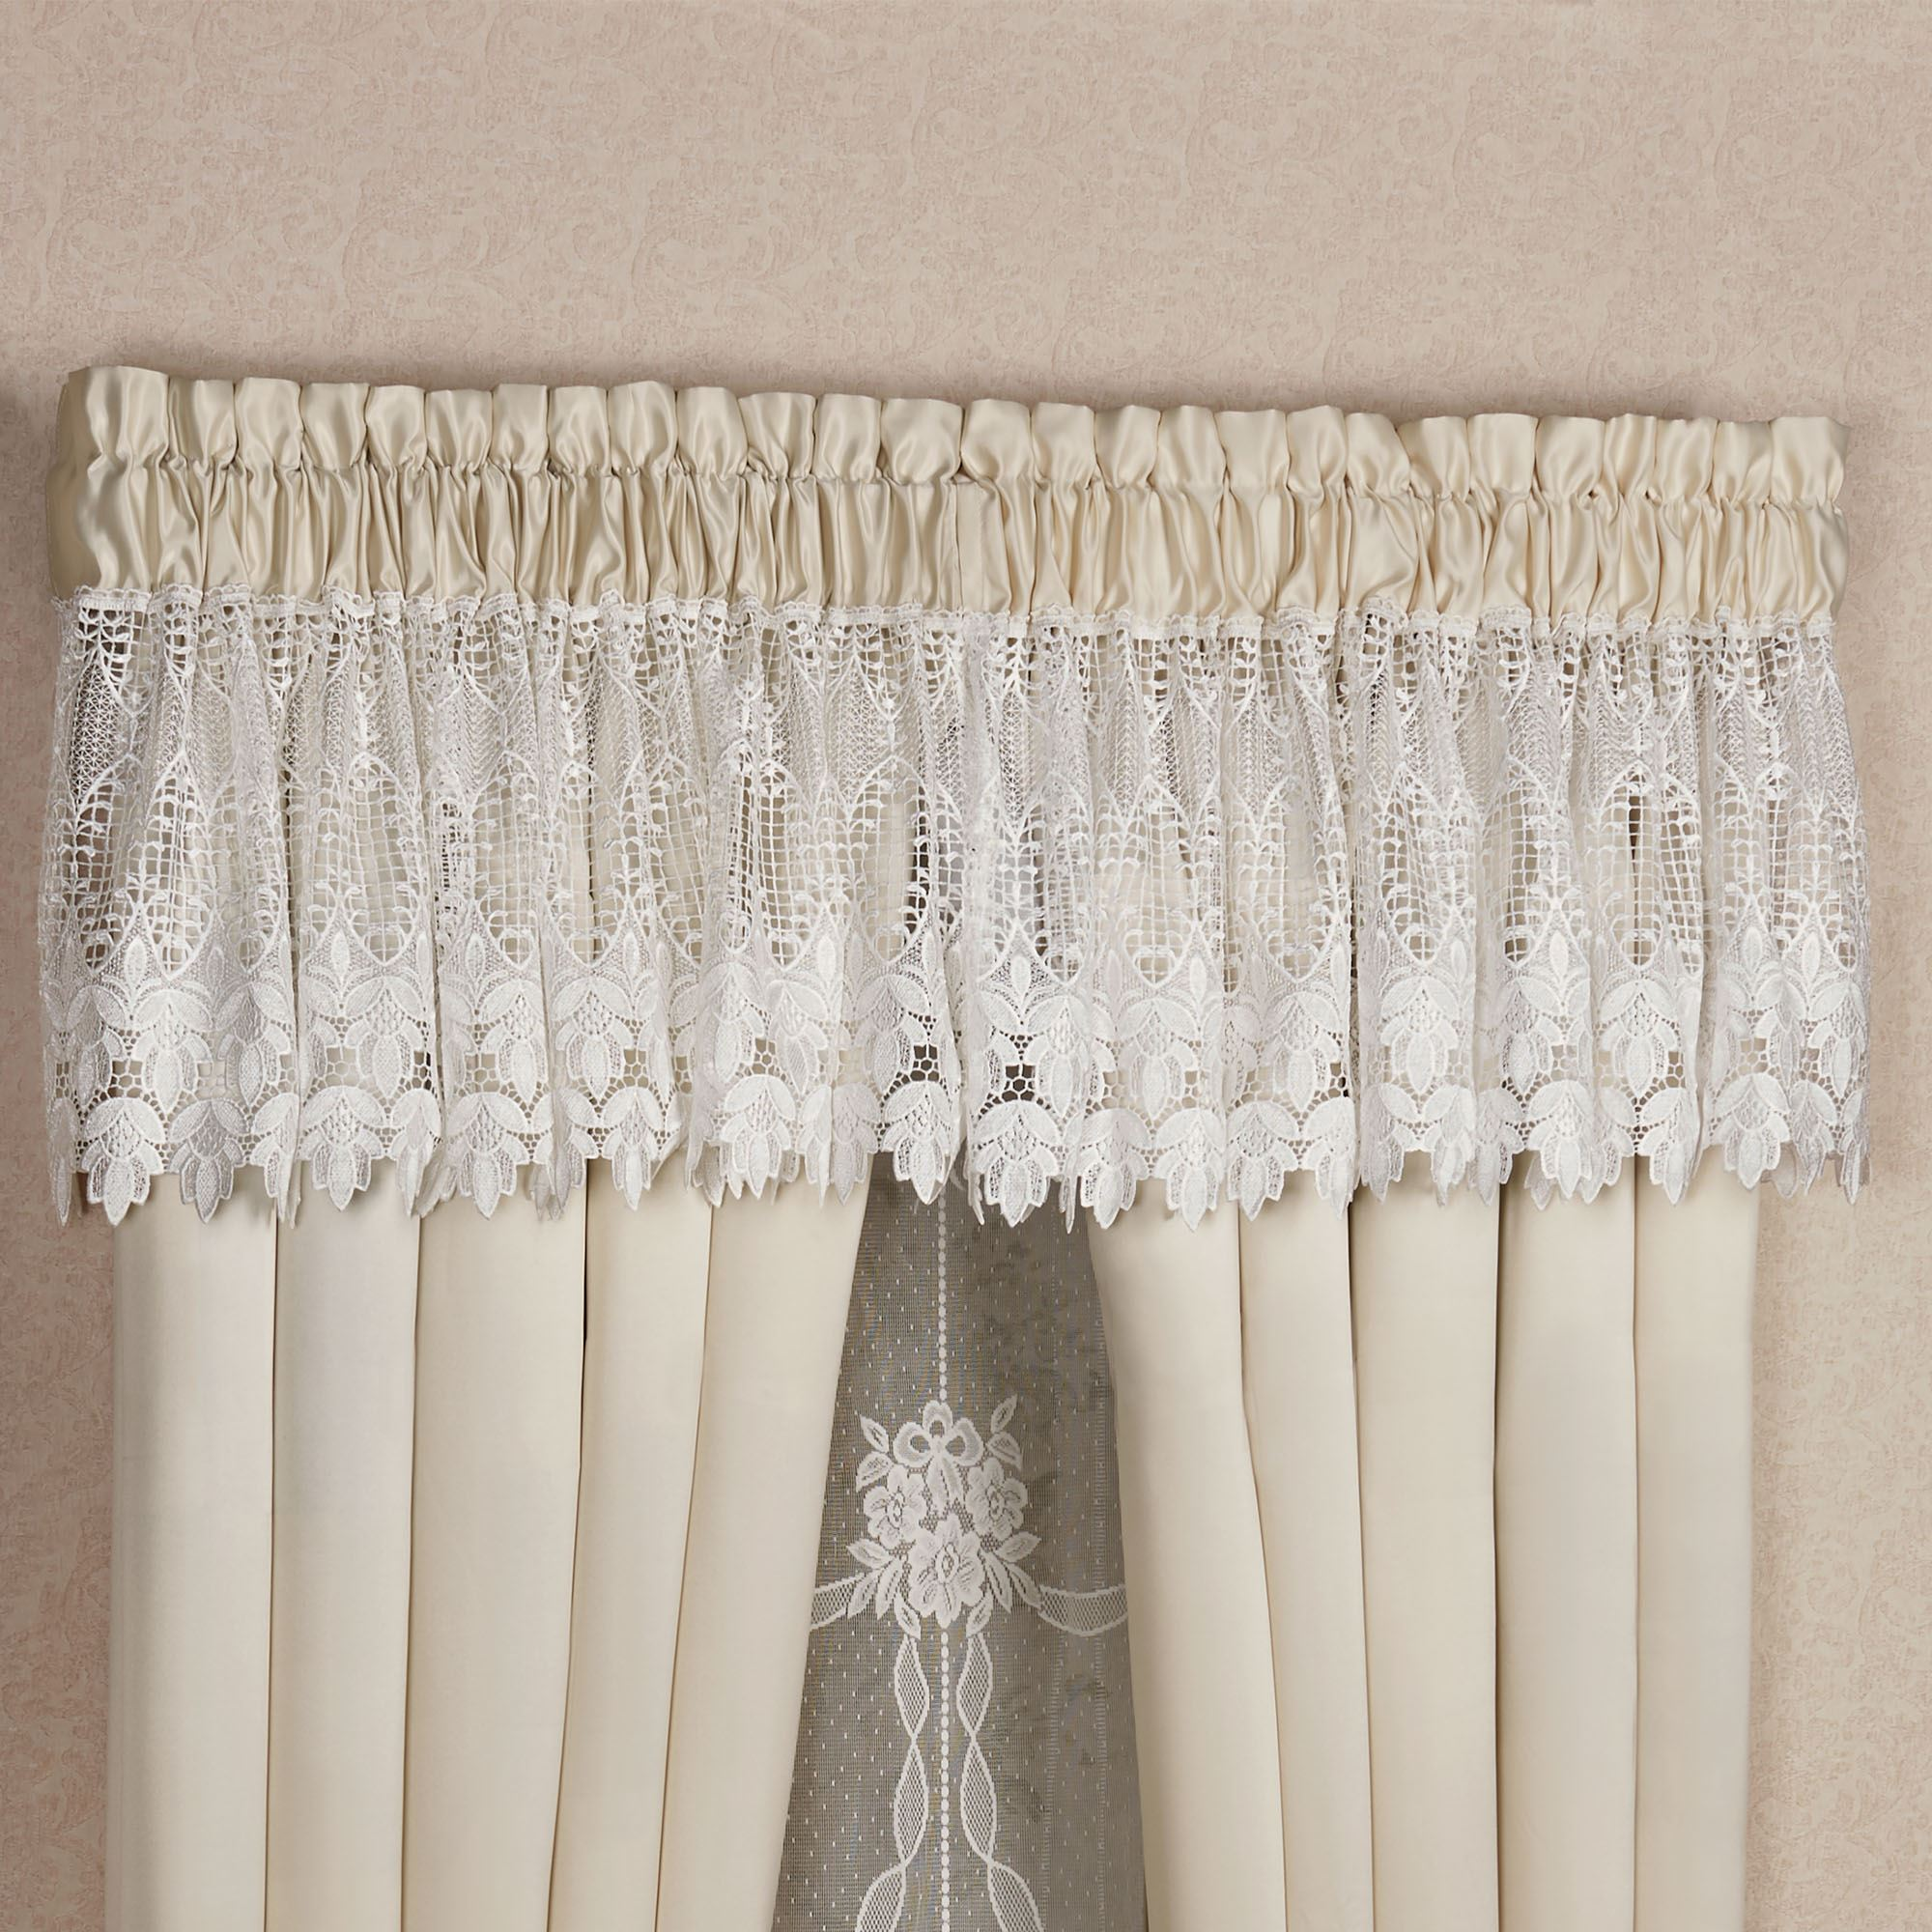 curtain tailored valance p rochelle window panel treatment x lace new